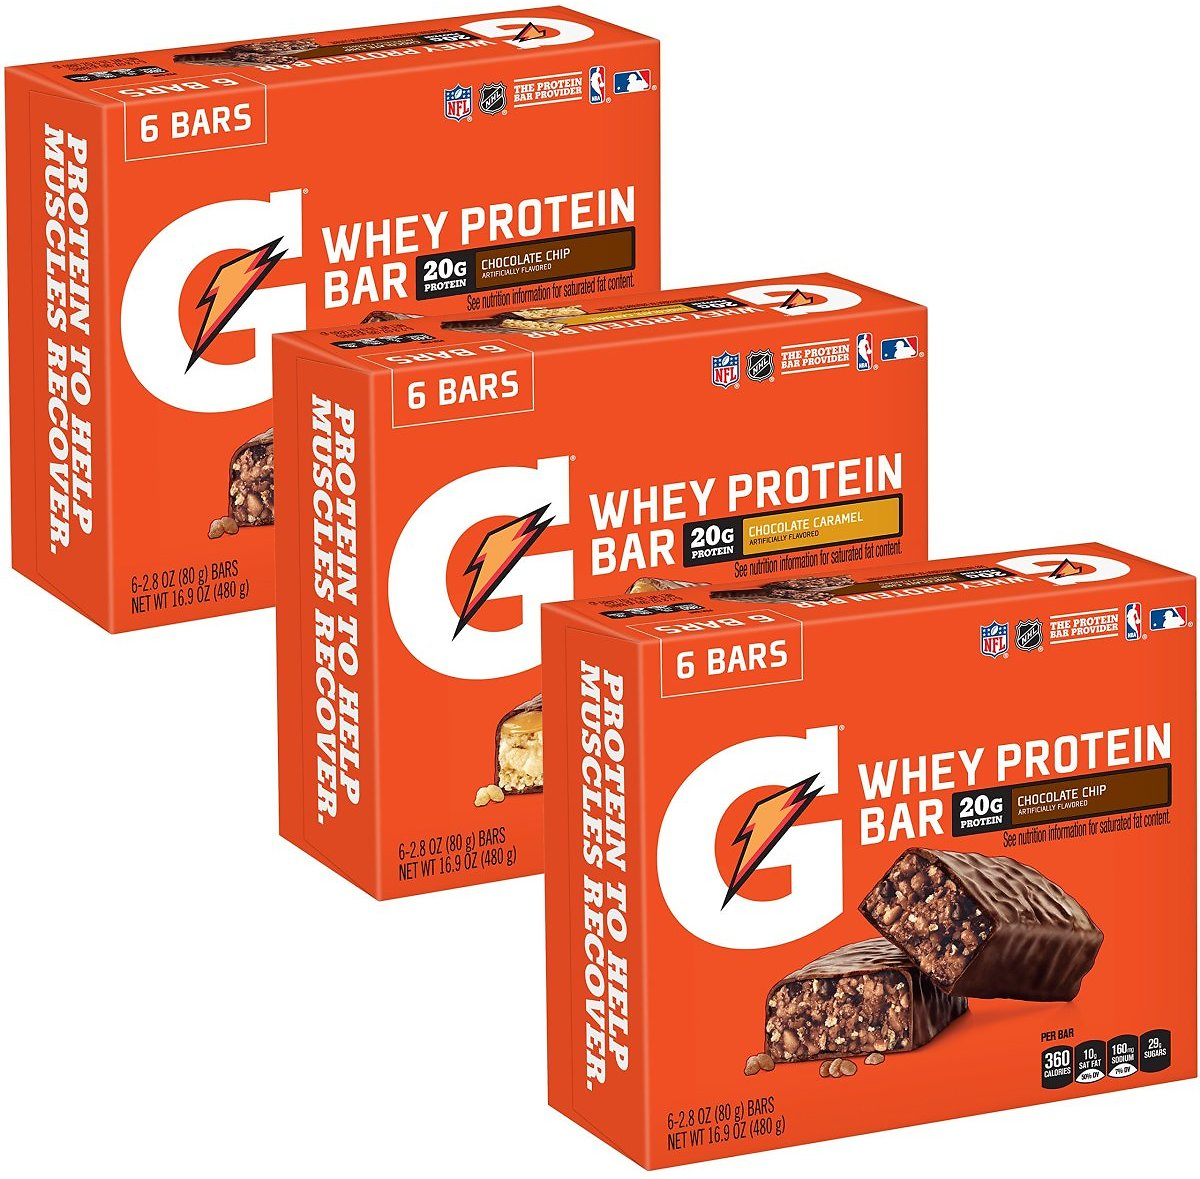 Gatorade Whey Protein Recover Bars, Variety Pack, 2.8 Oz Bars (18 Count)